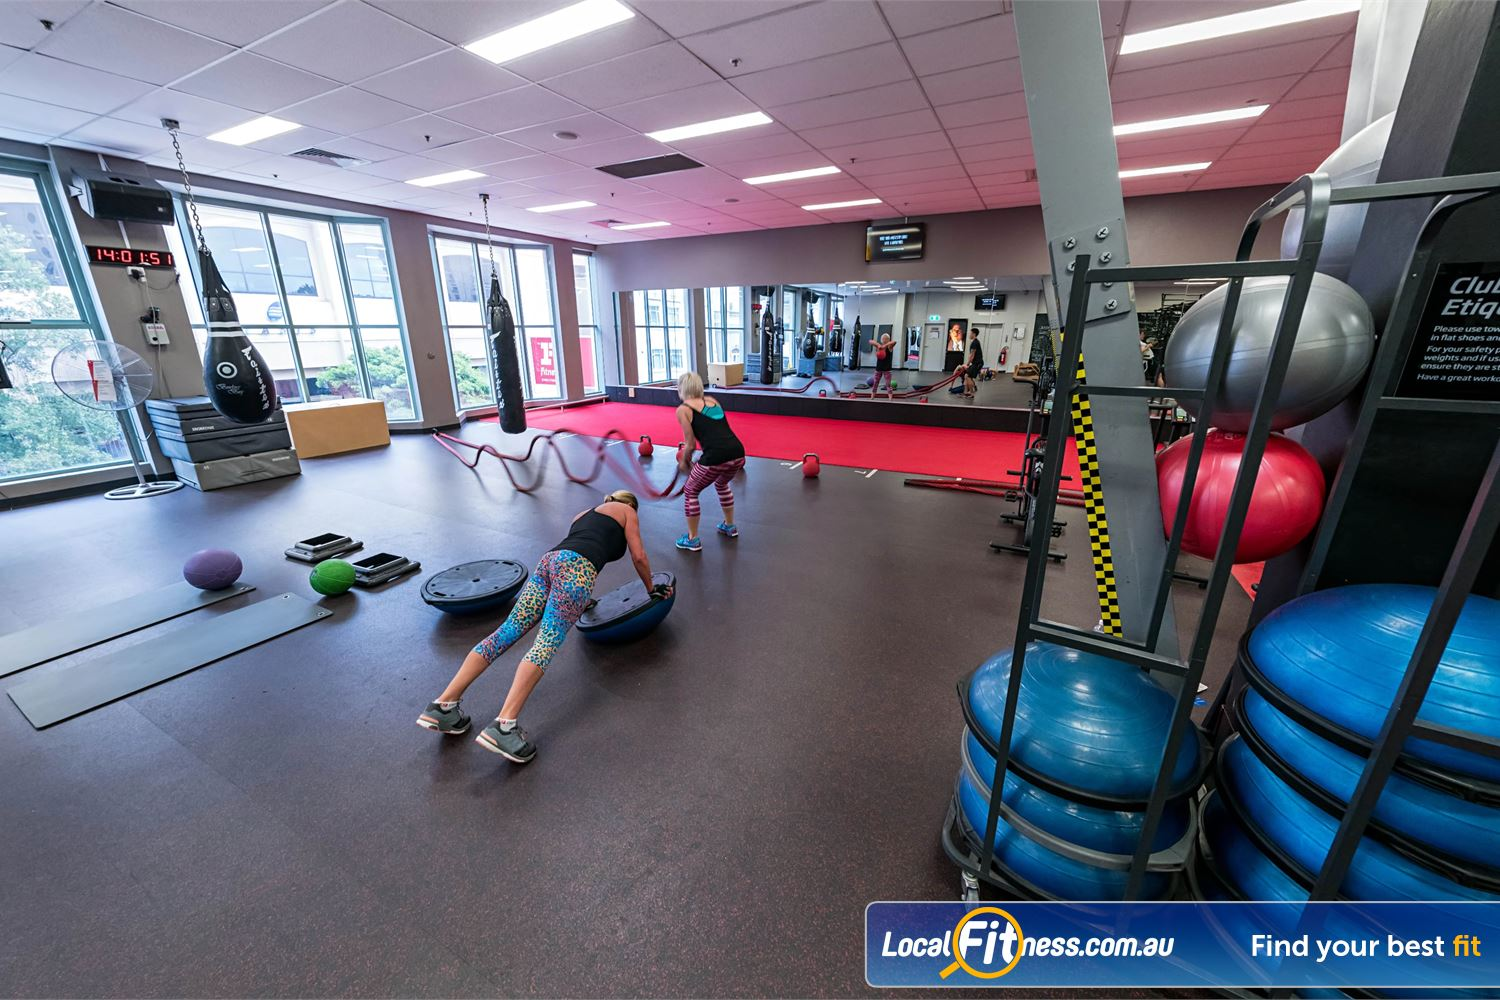 Fitness First Platinum Spring St Near Queens Park The freestyle area includes battle ropes, indoor sled track, heavy boxing bags and more.